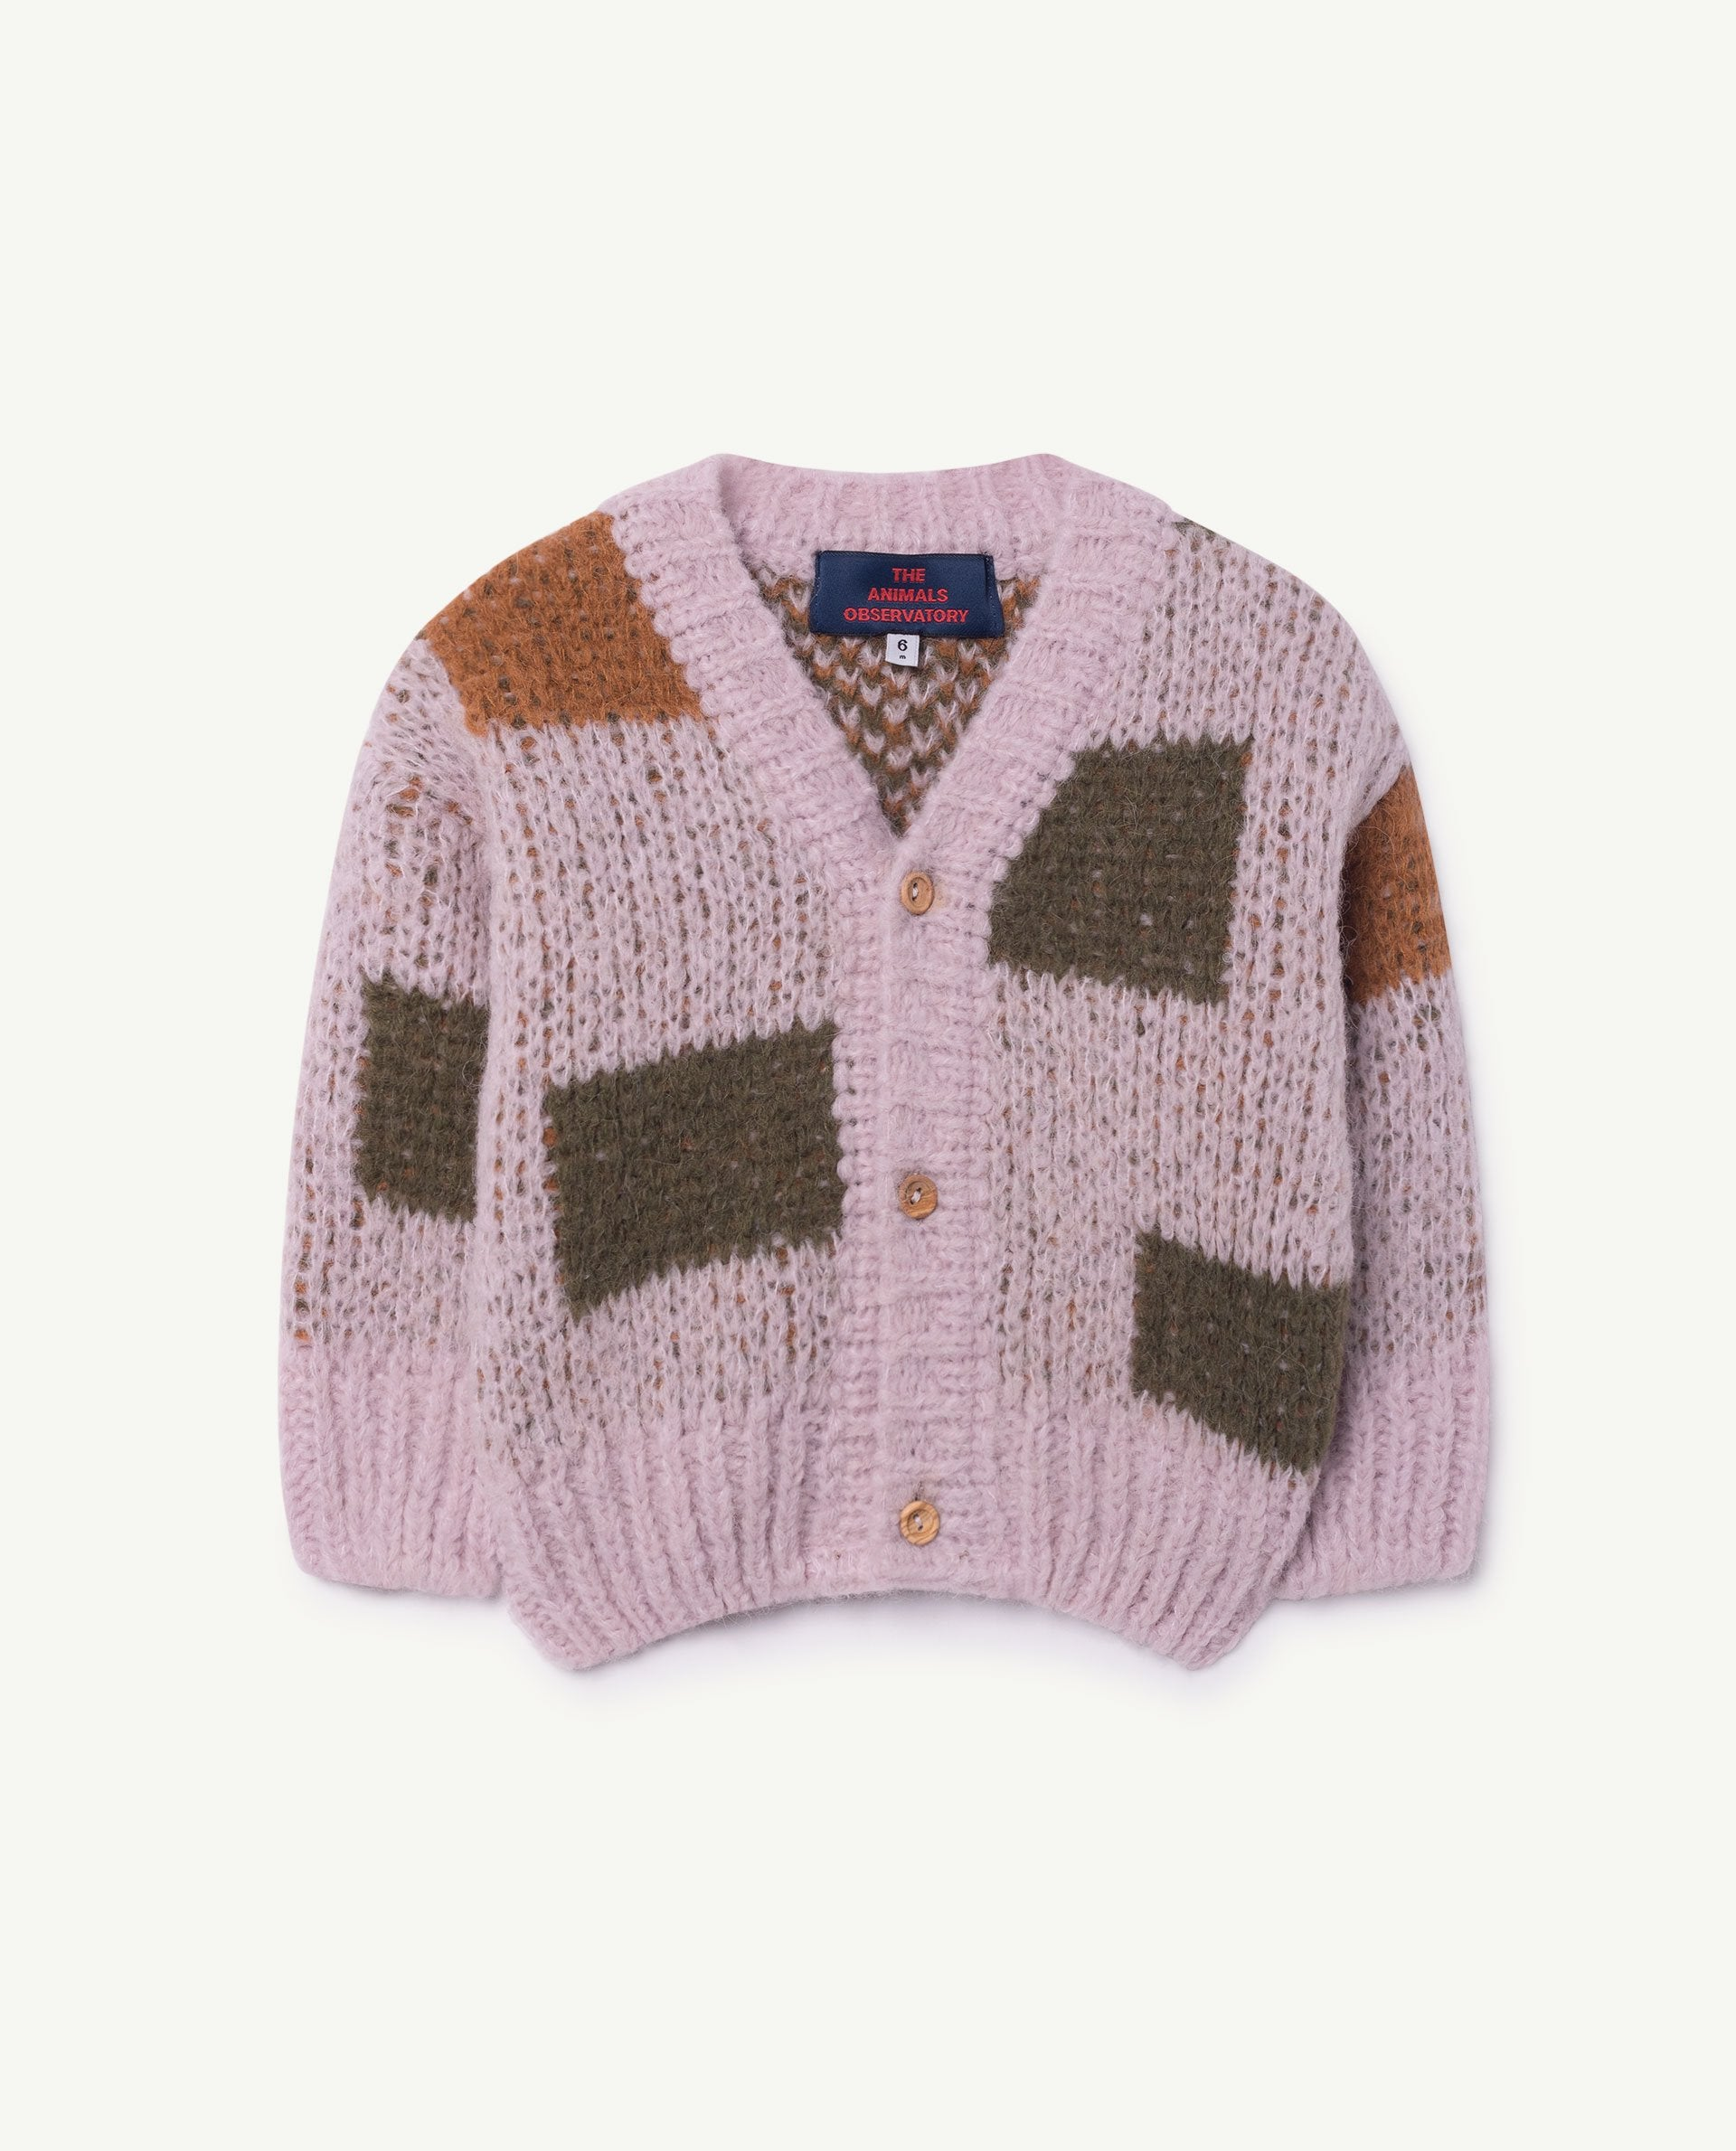 The Animals Observatory Arty Peasant Unisex Baby Cardigan Sweater Light Purple | BIEN BIEN